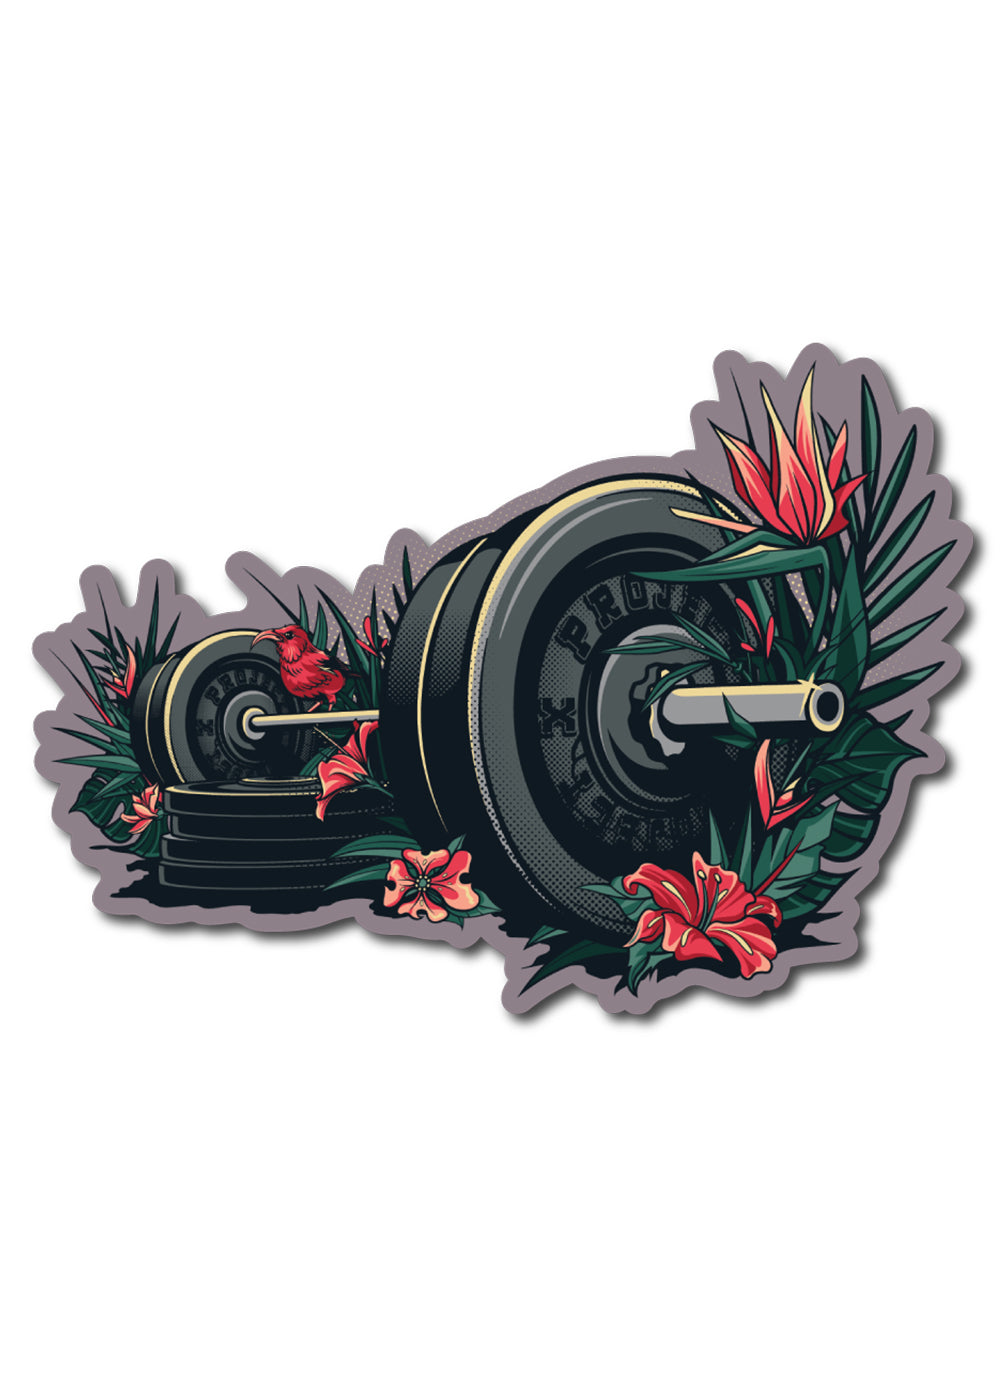 'Flora. Fauna. Fitness.' Sticker